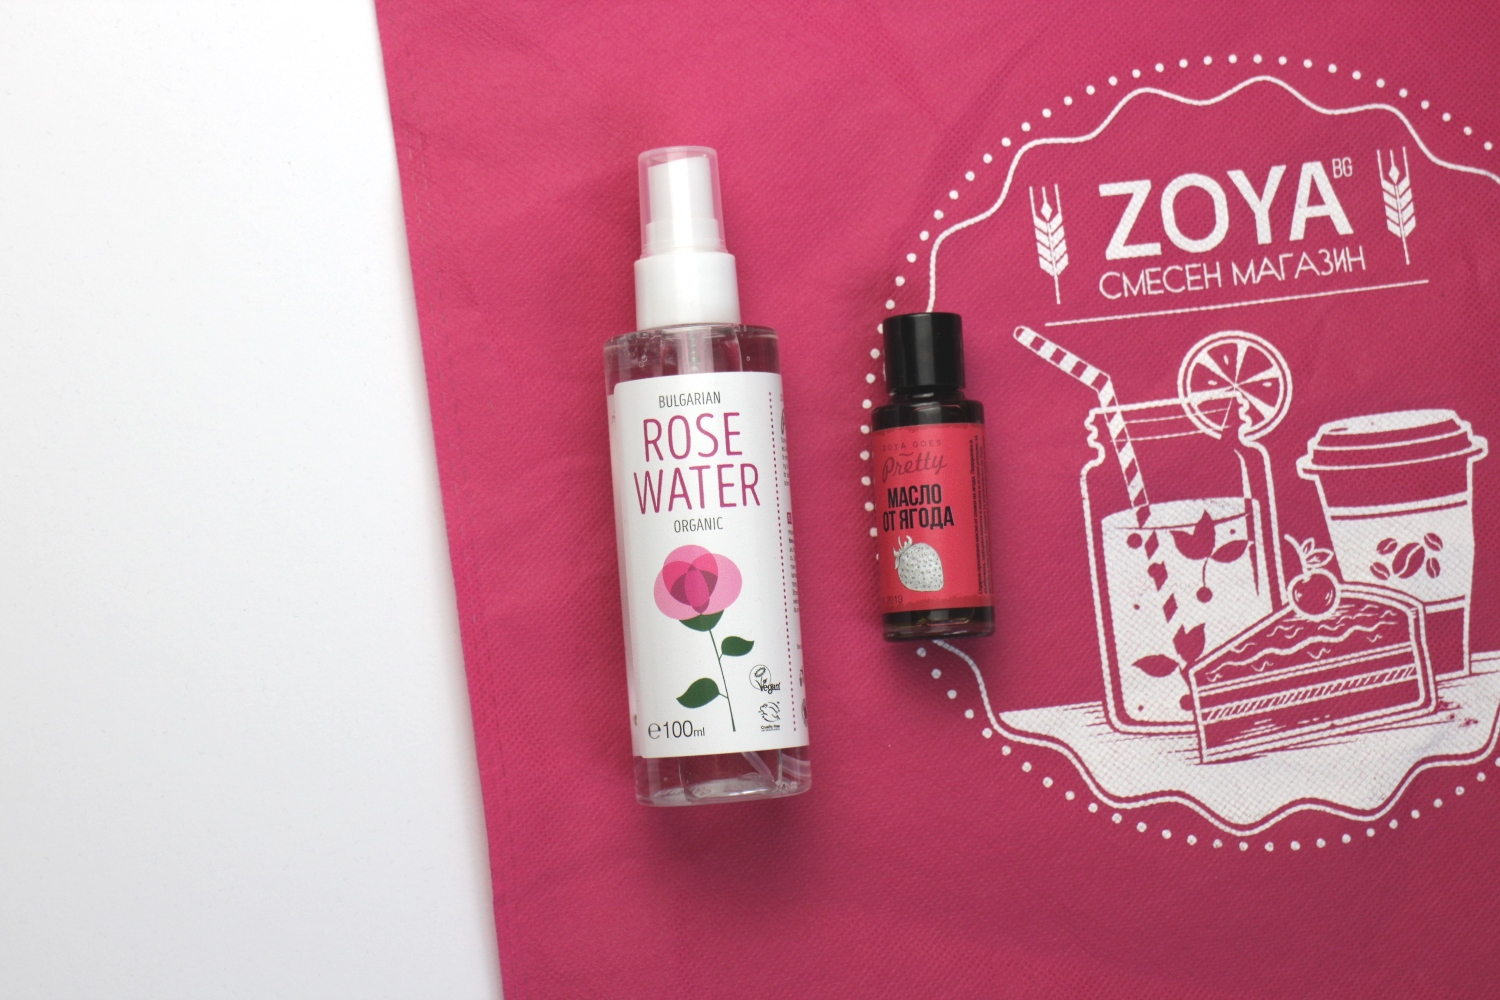 Zoya Bulgaria Organic Beauty